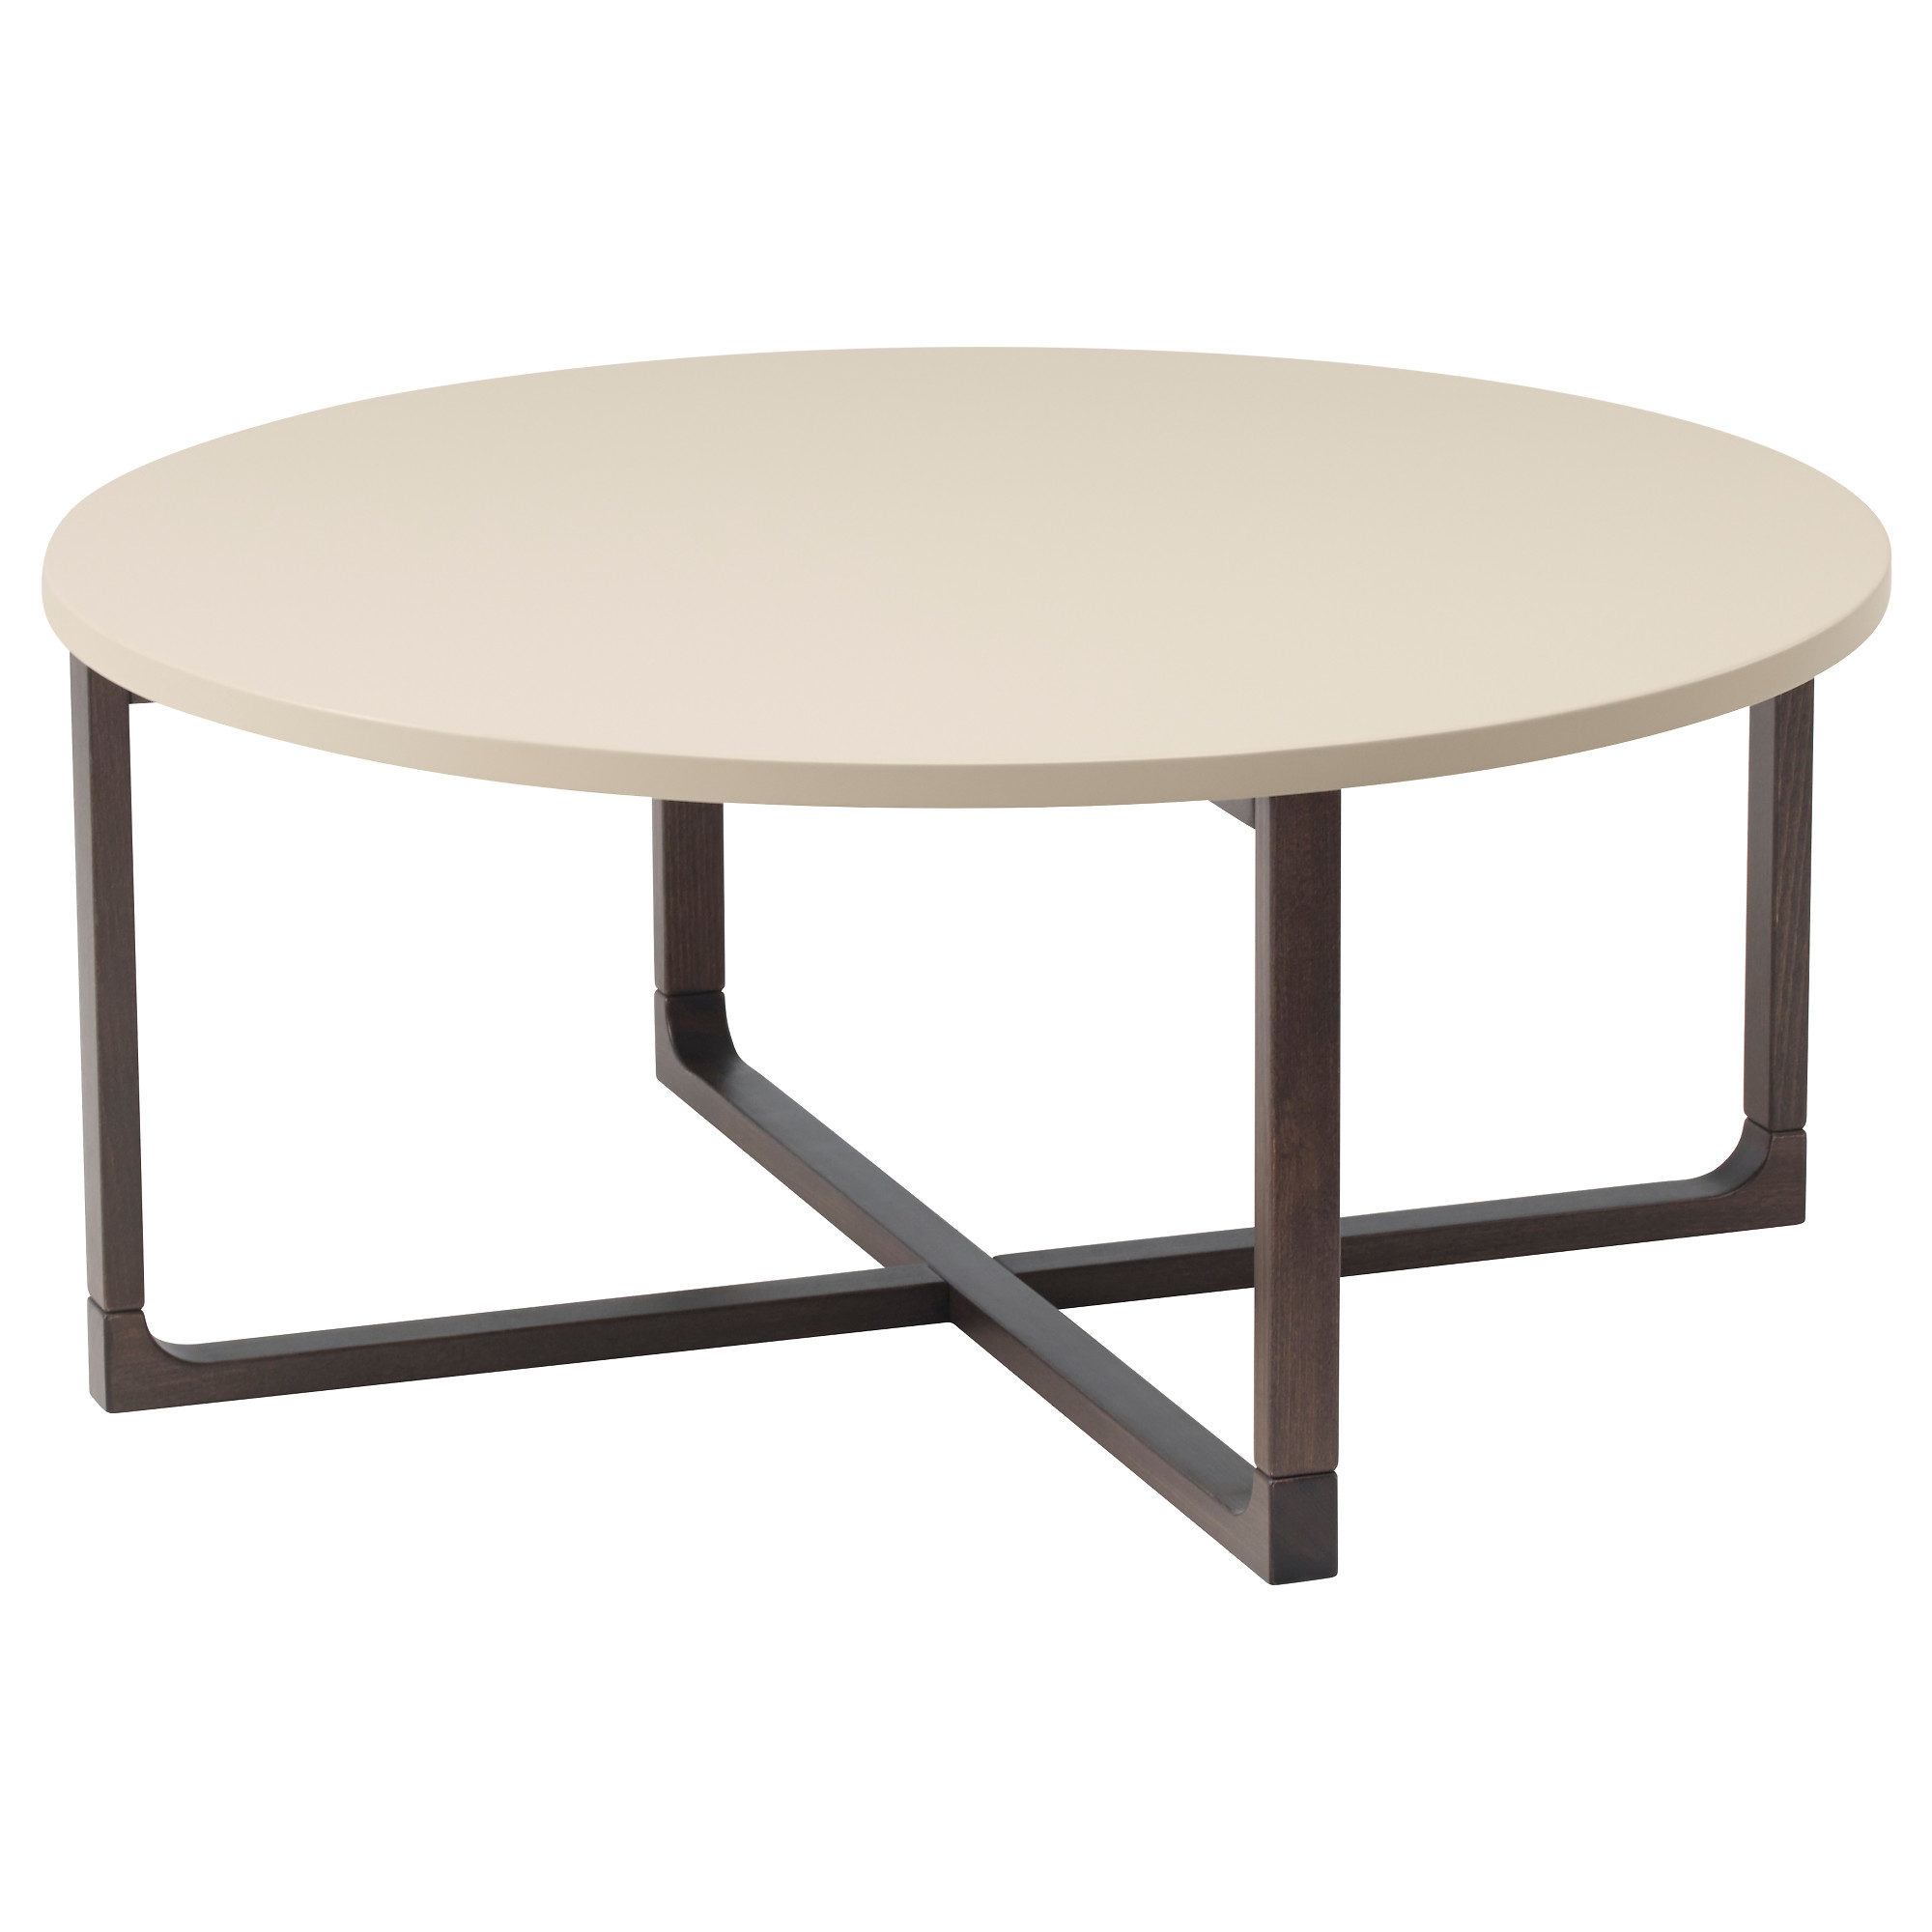 rissna coffee table, beige height: 15 3/4  KXSKZOR